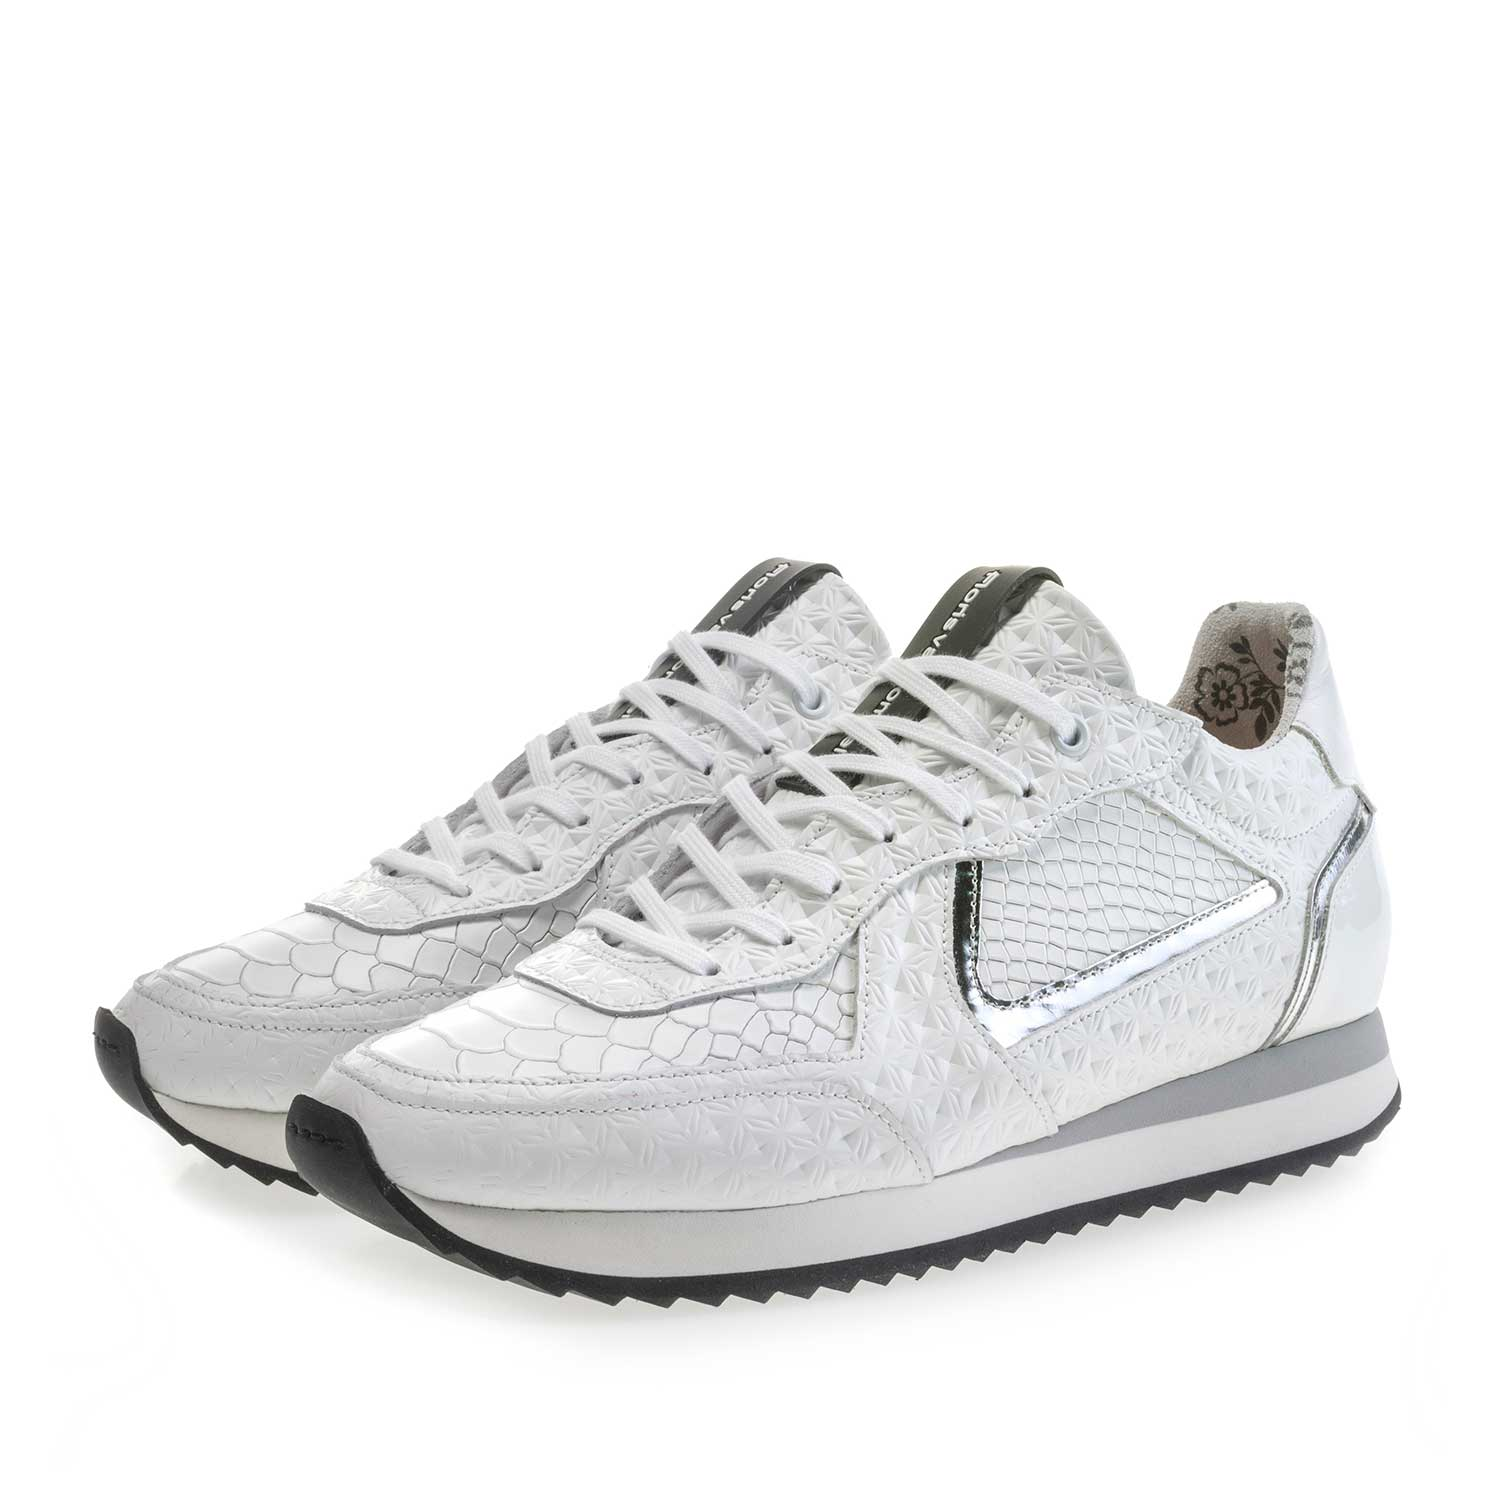 85232/00 - White leather sneaker